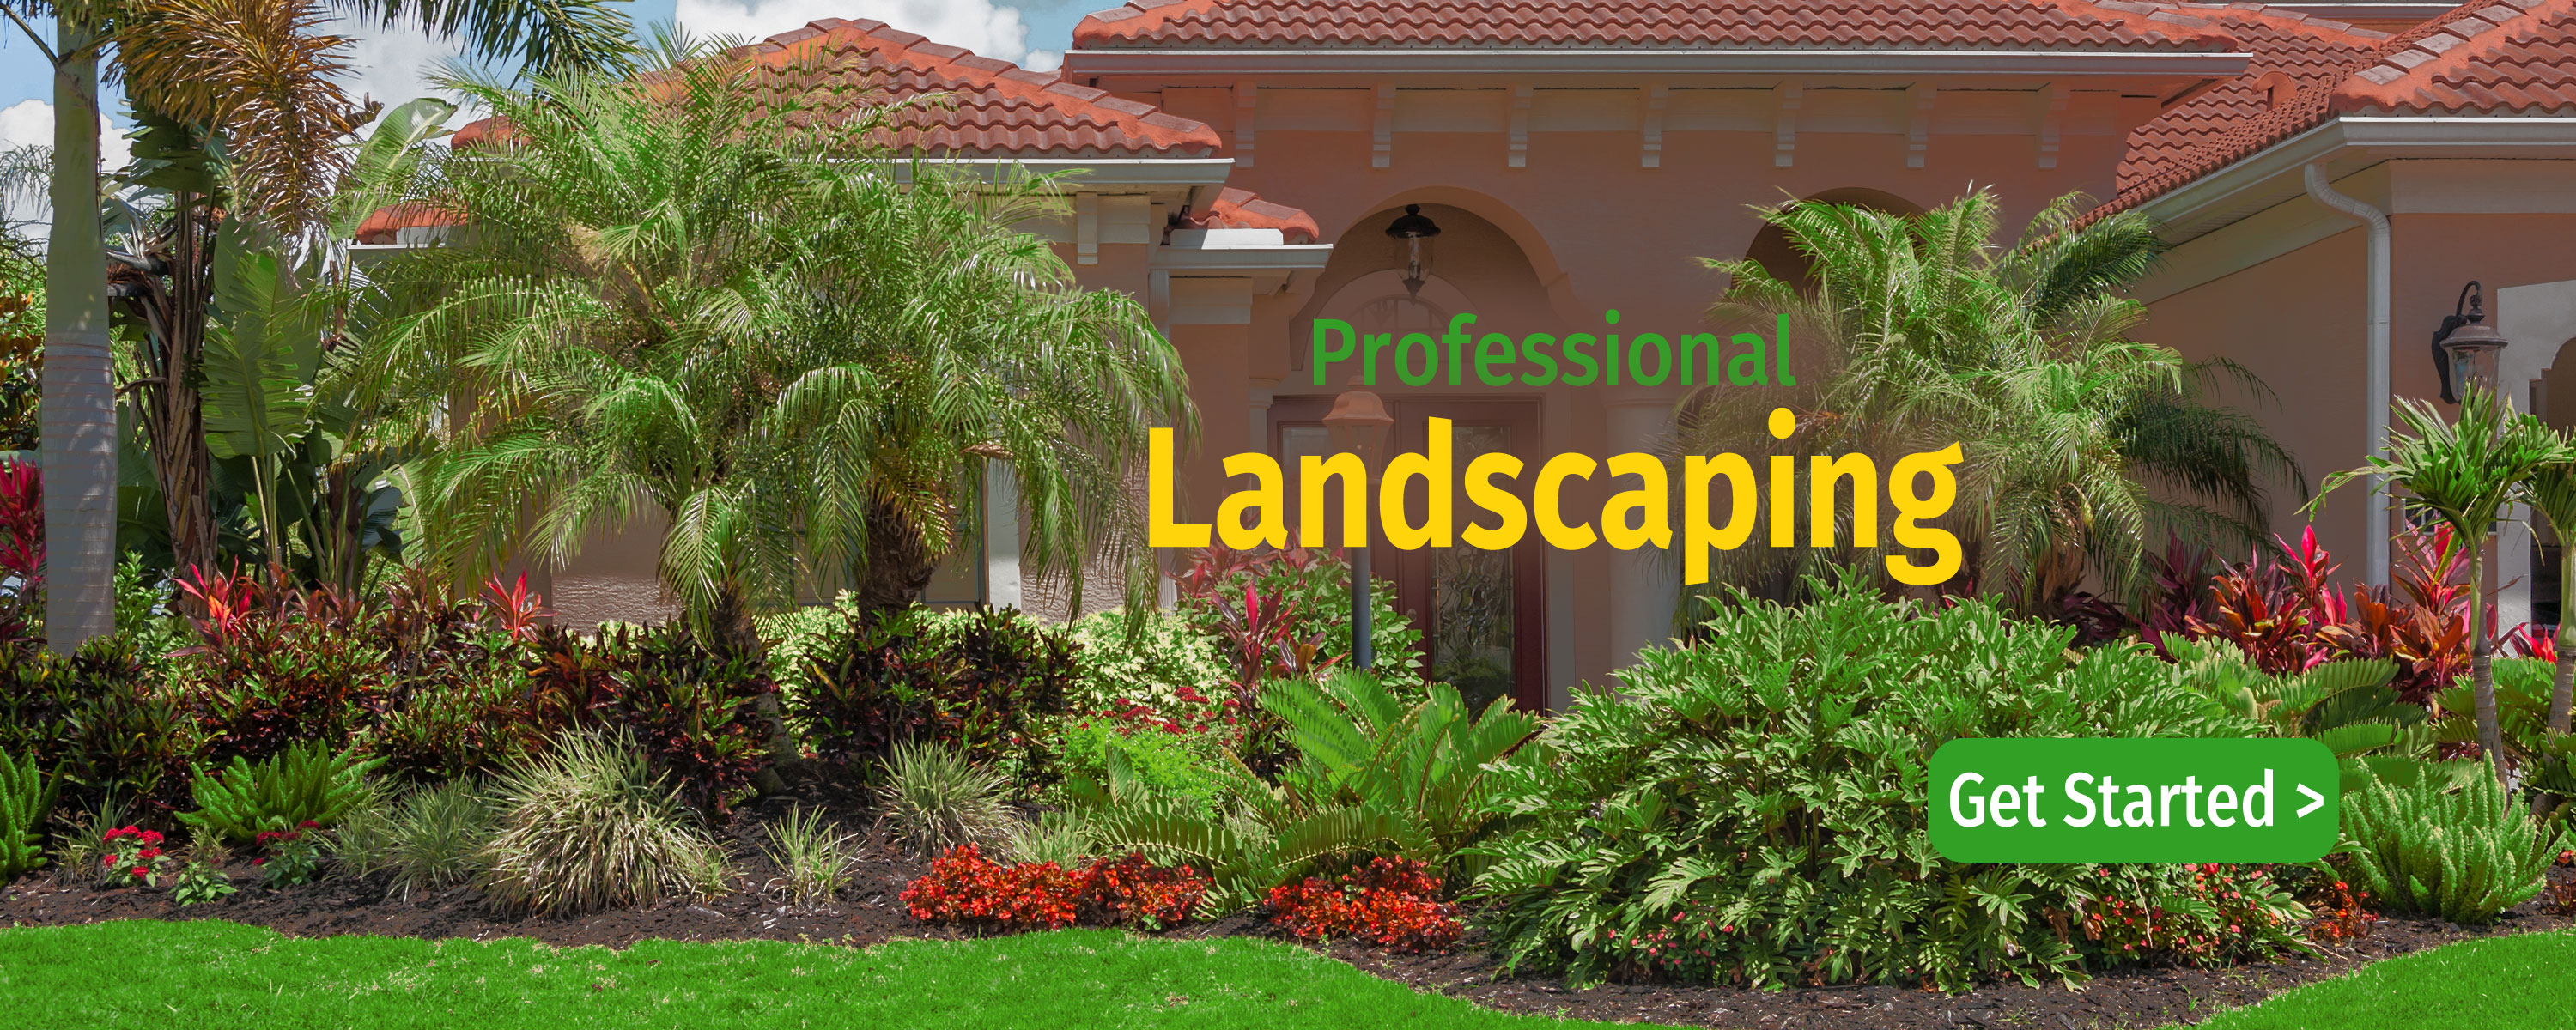 landscaping tree care service pest control tampa fl all